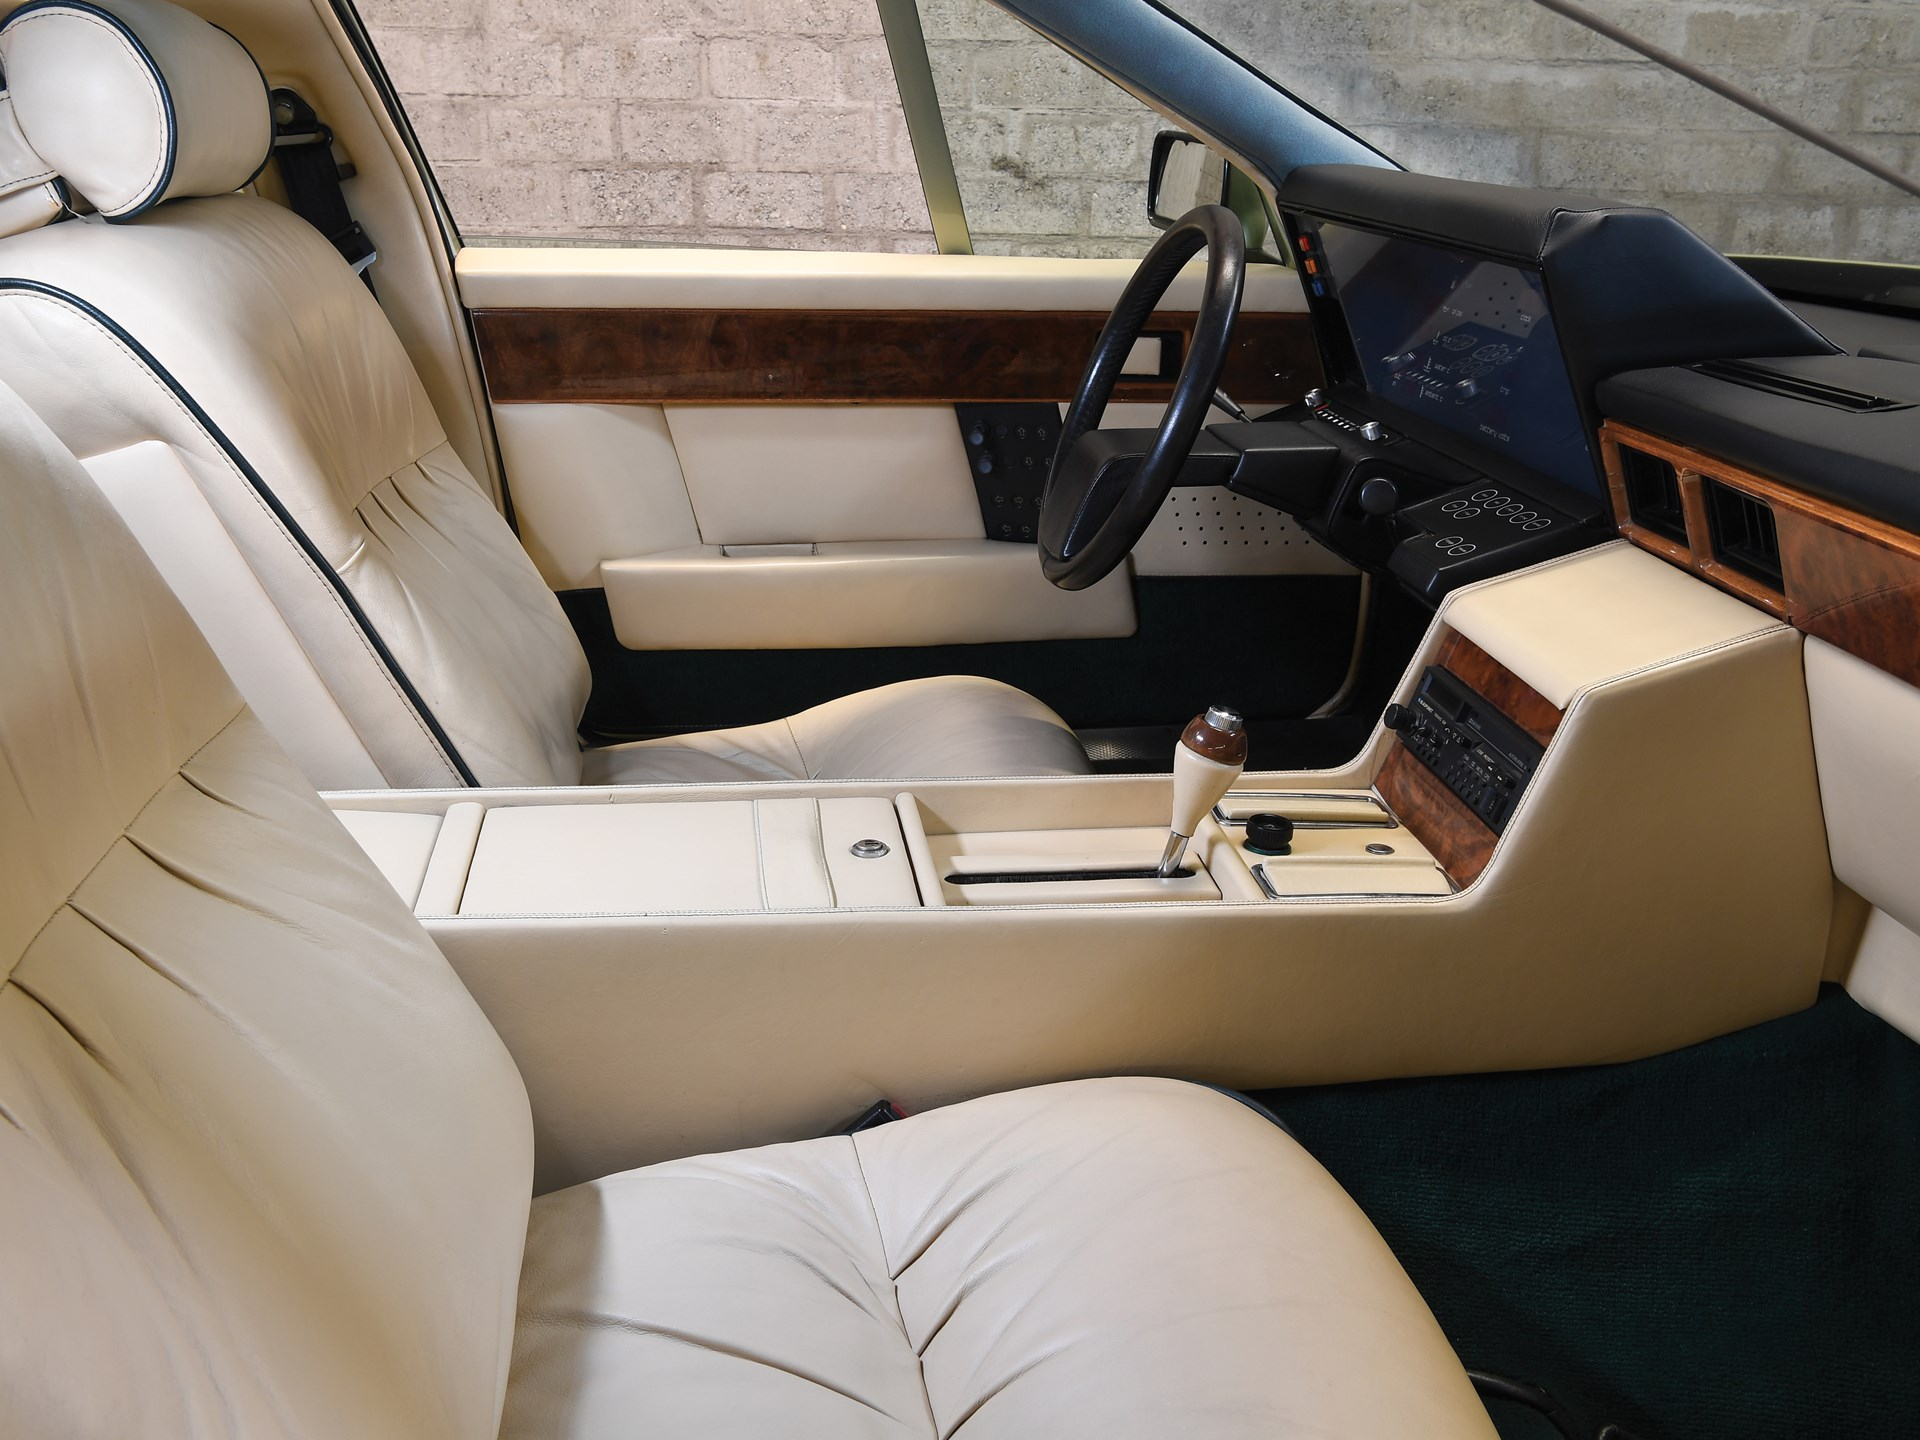 1983 Aston Martin Tickford Lagonda interior